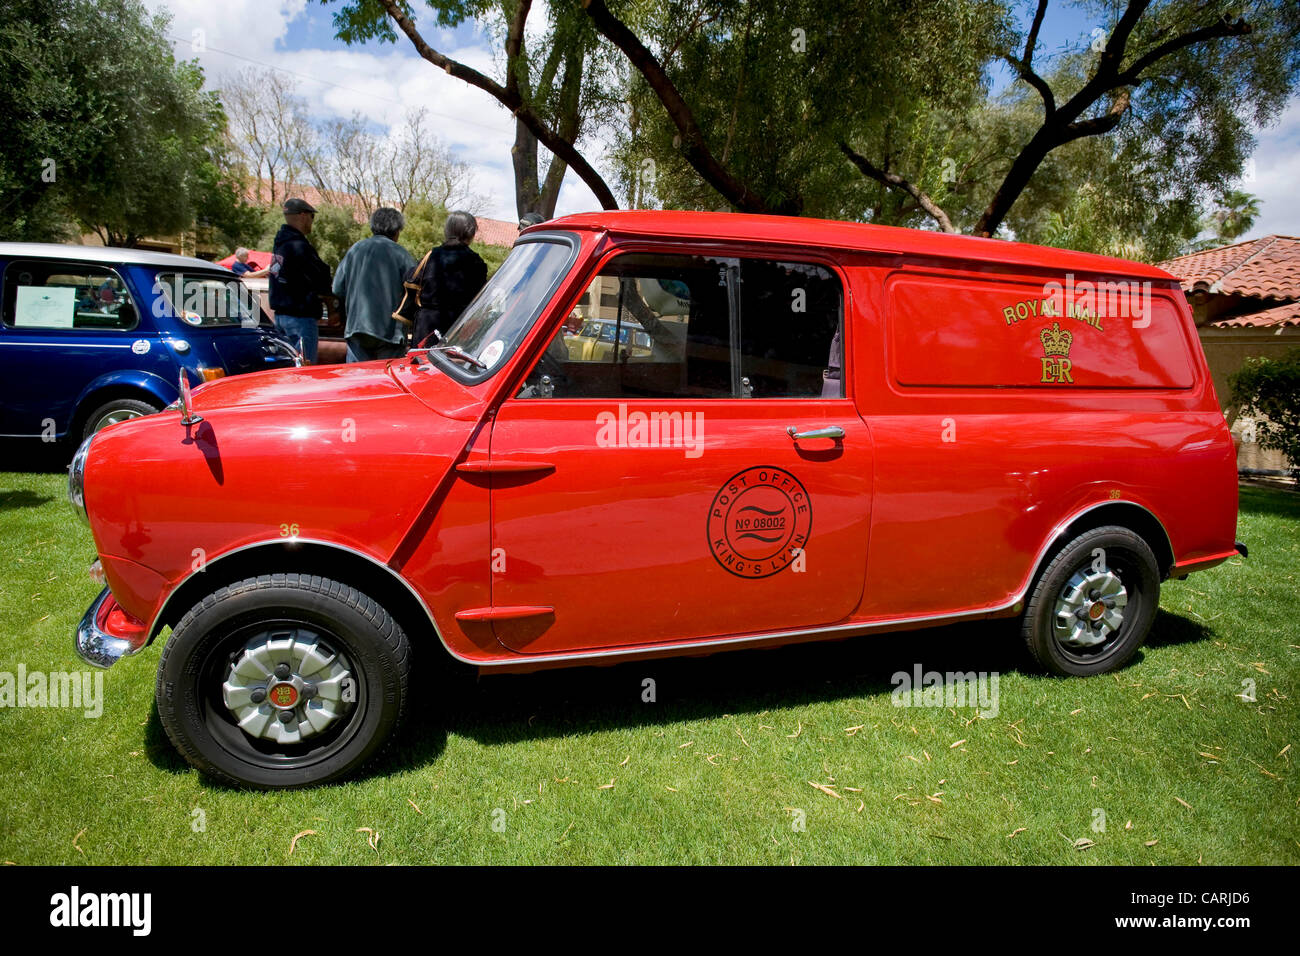 April 14, 2012 - Phoeniz, AZ, USA -  A 1965 Austin Minivan, one of approximately 60 micro and mini cars which rallied Stock Photo